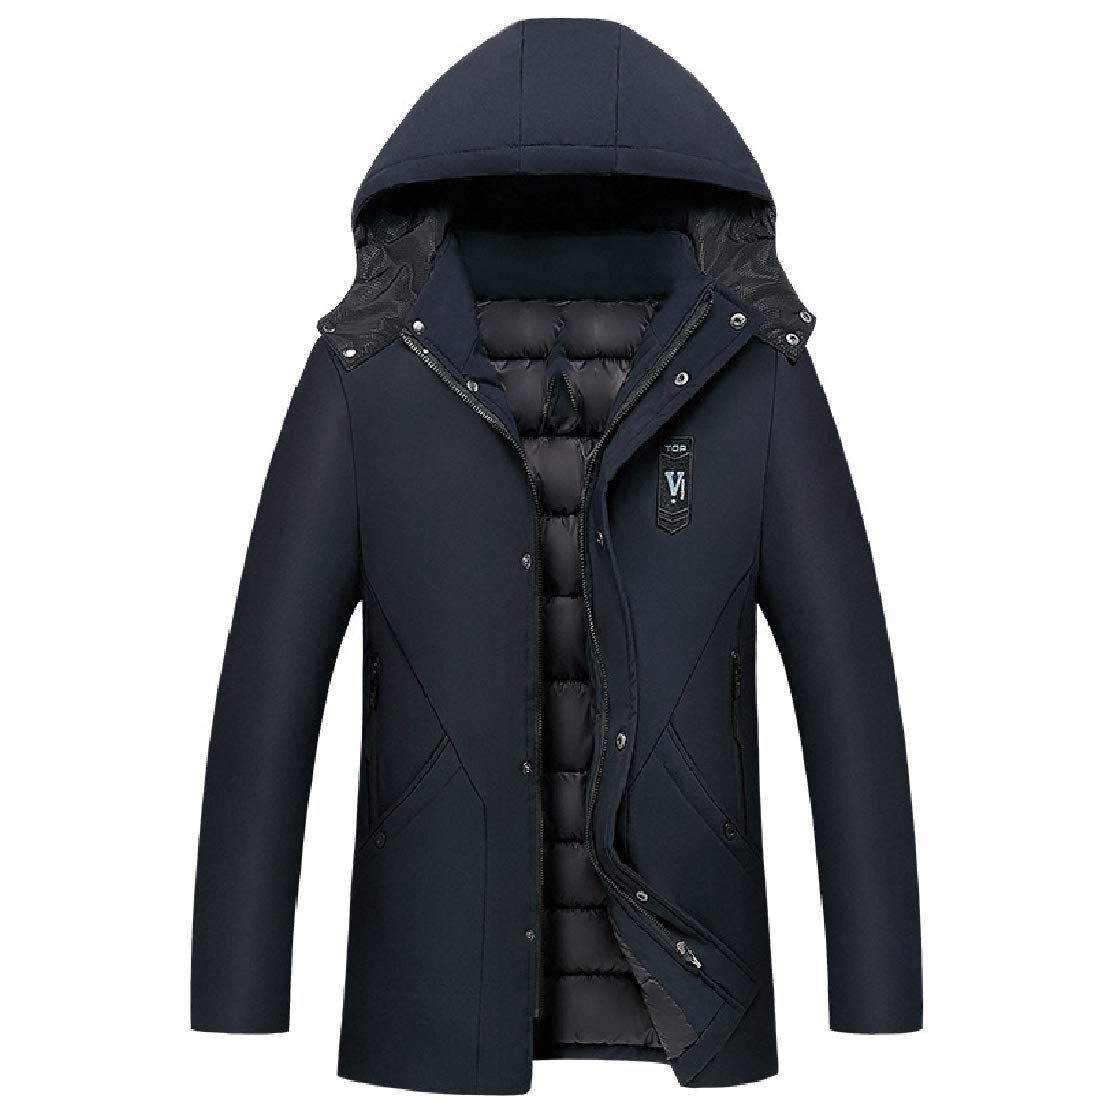 YUNY Mens Keep Warm Mid-Long Winter Relaxed-Fit Hood Outwear Thick Coat Dark Blue 2XL